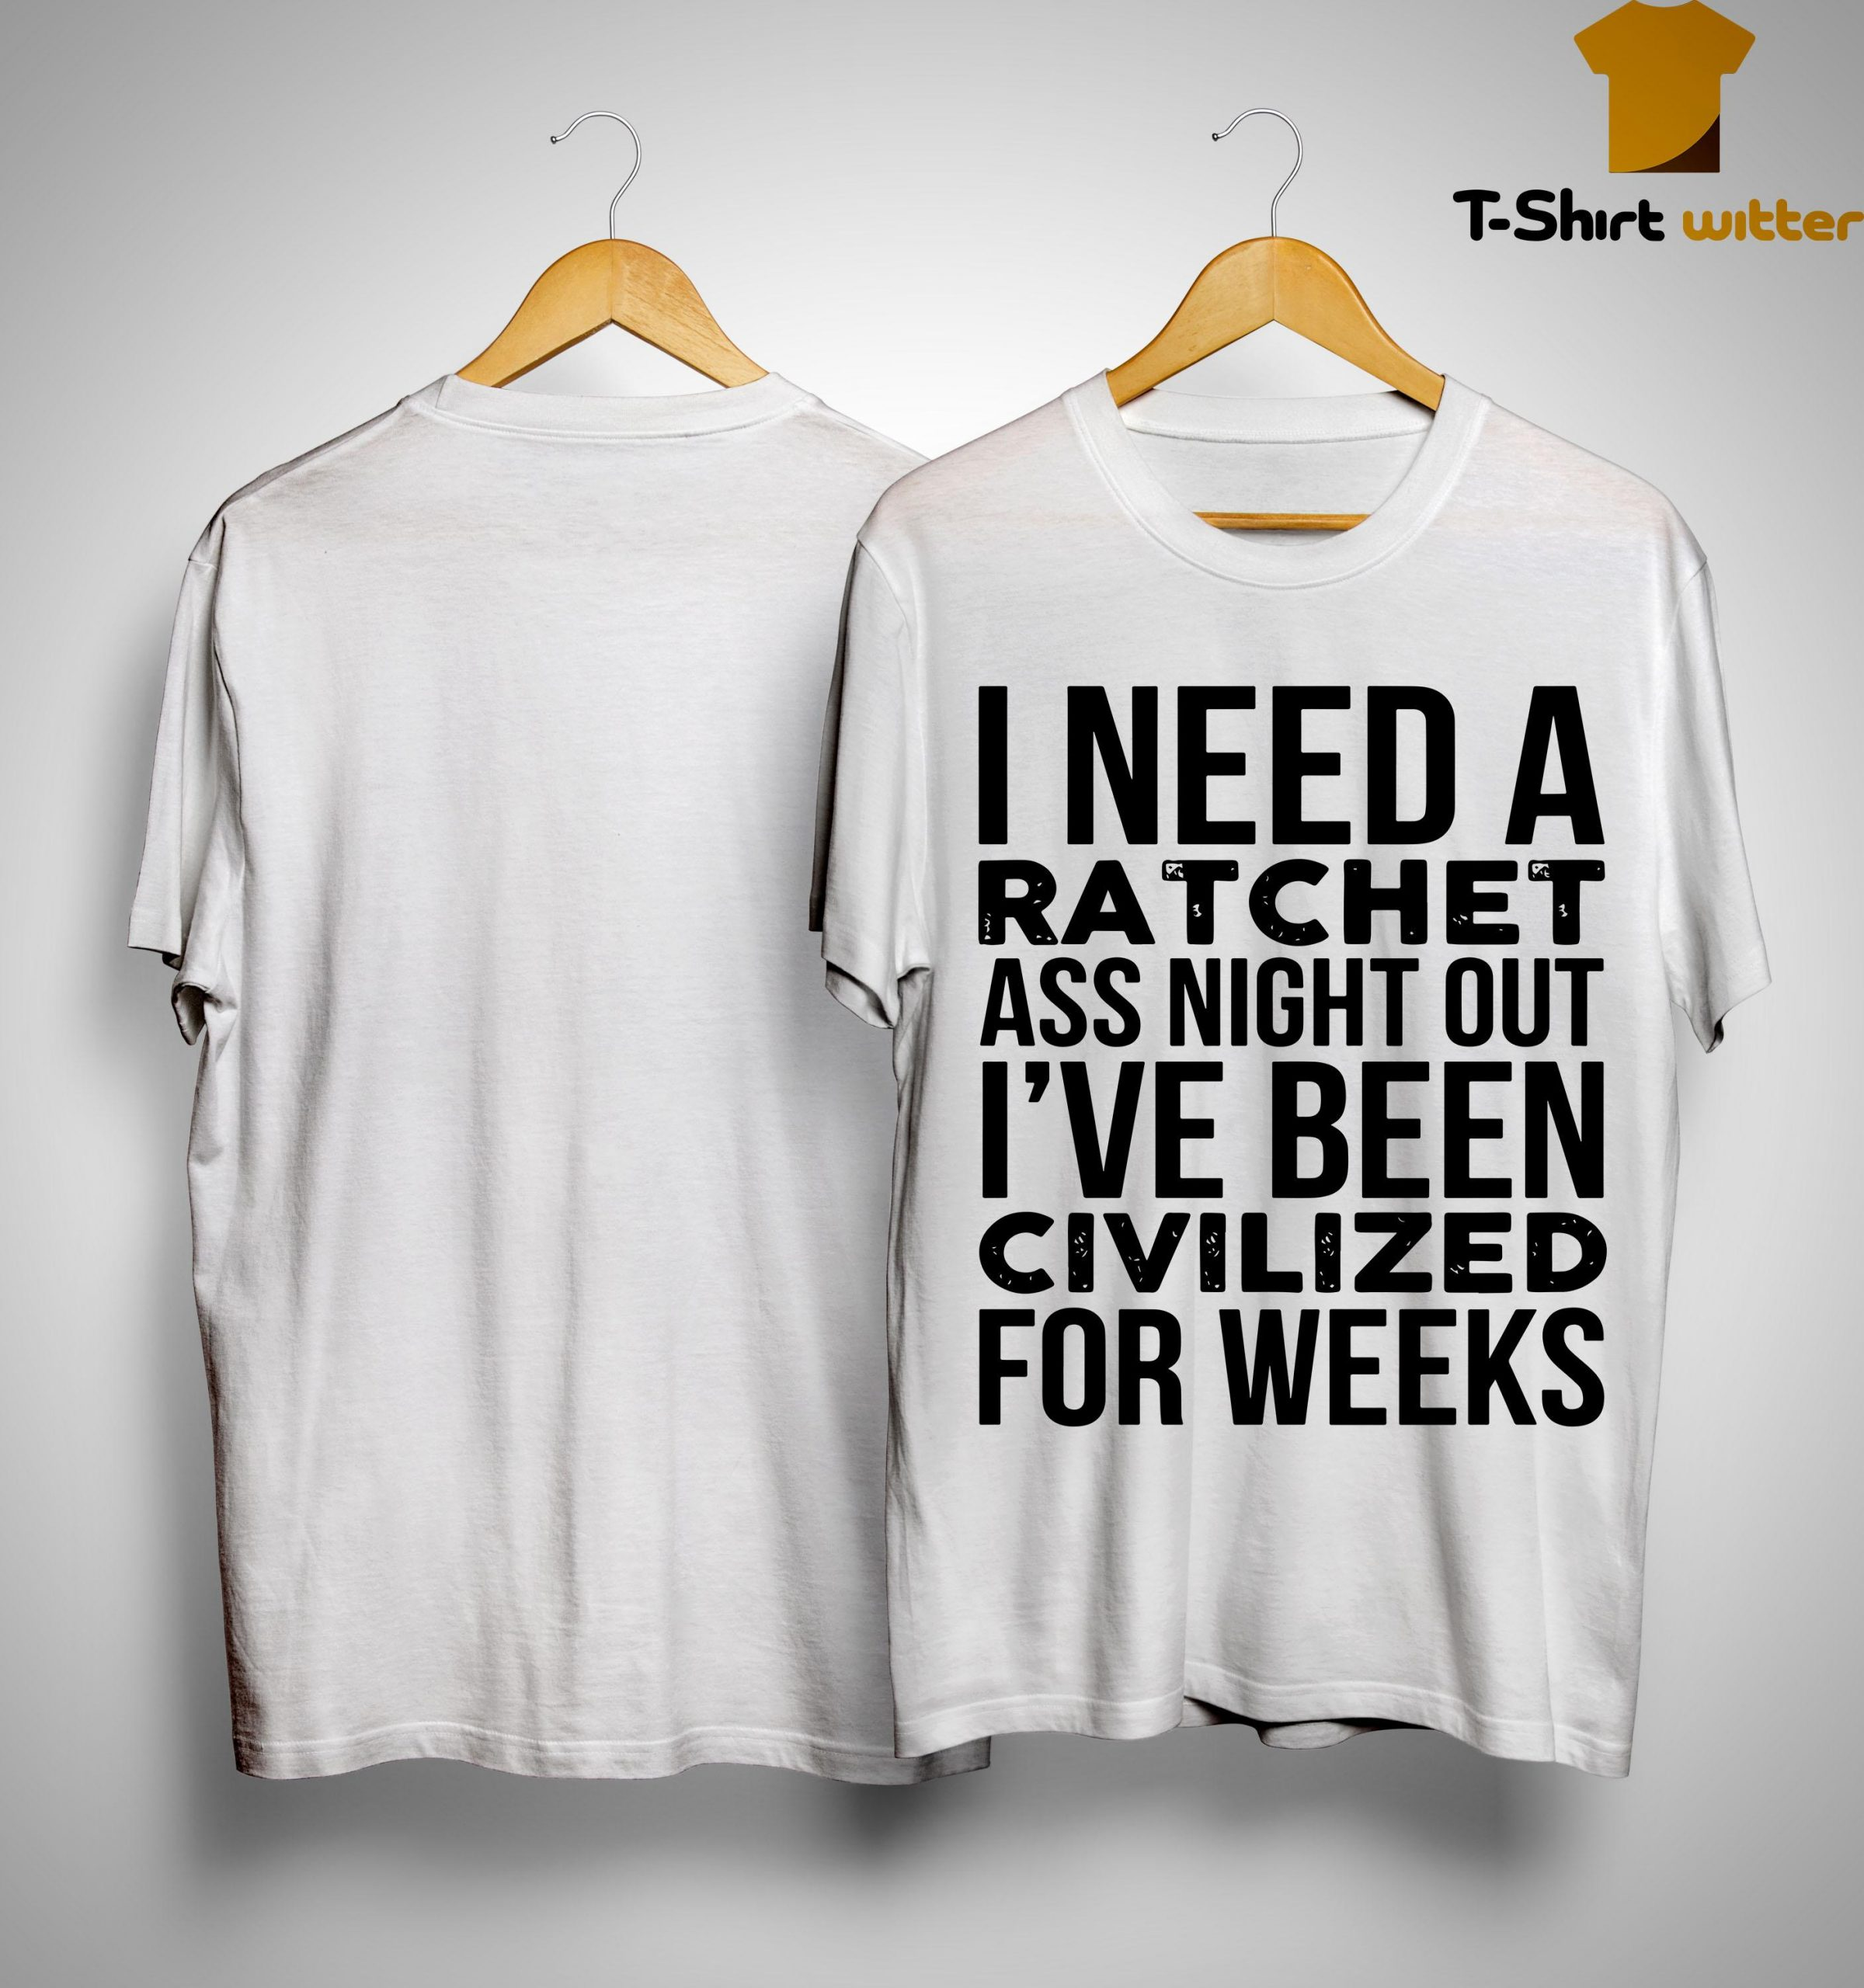 I Need A Ratchet Ass Night Out I've Been Civilized For Weeks Shirt